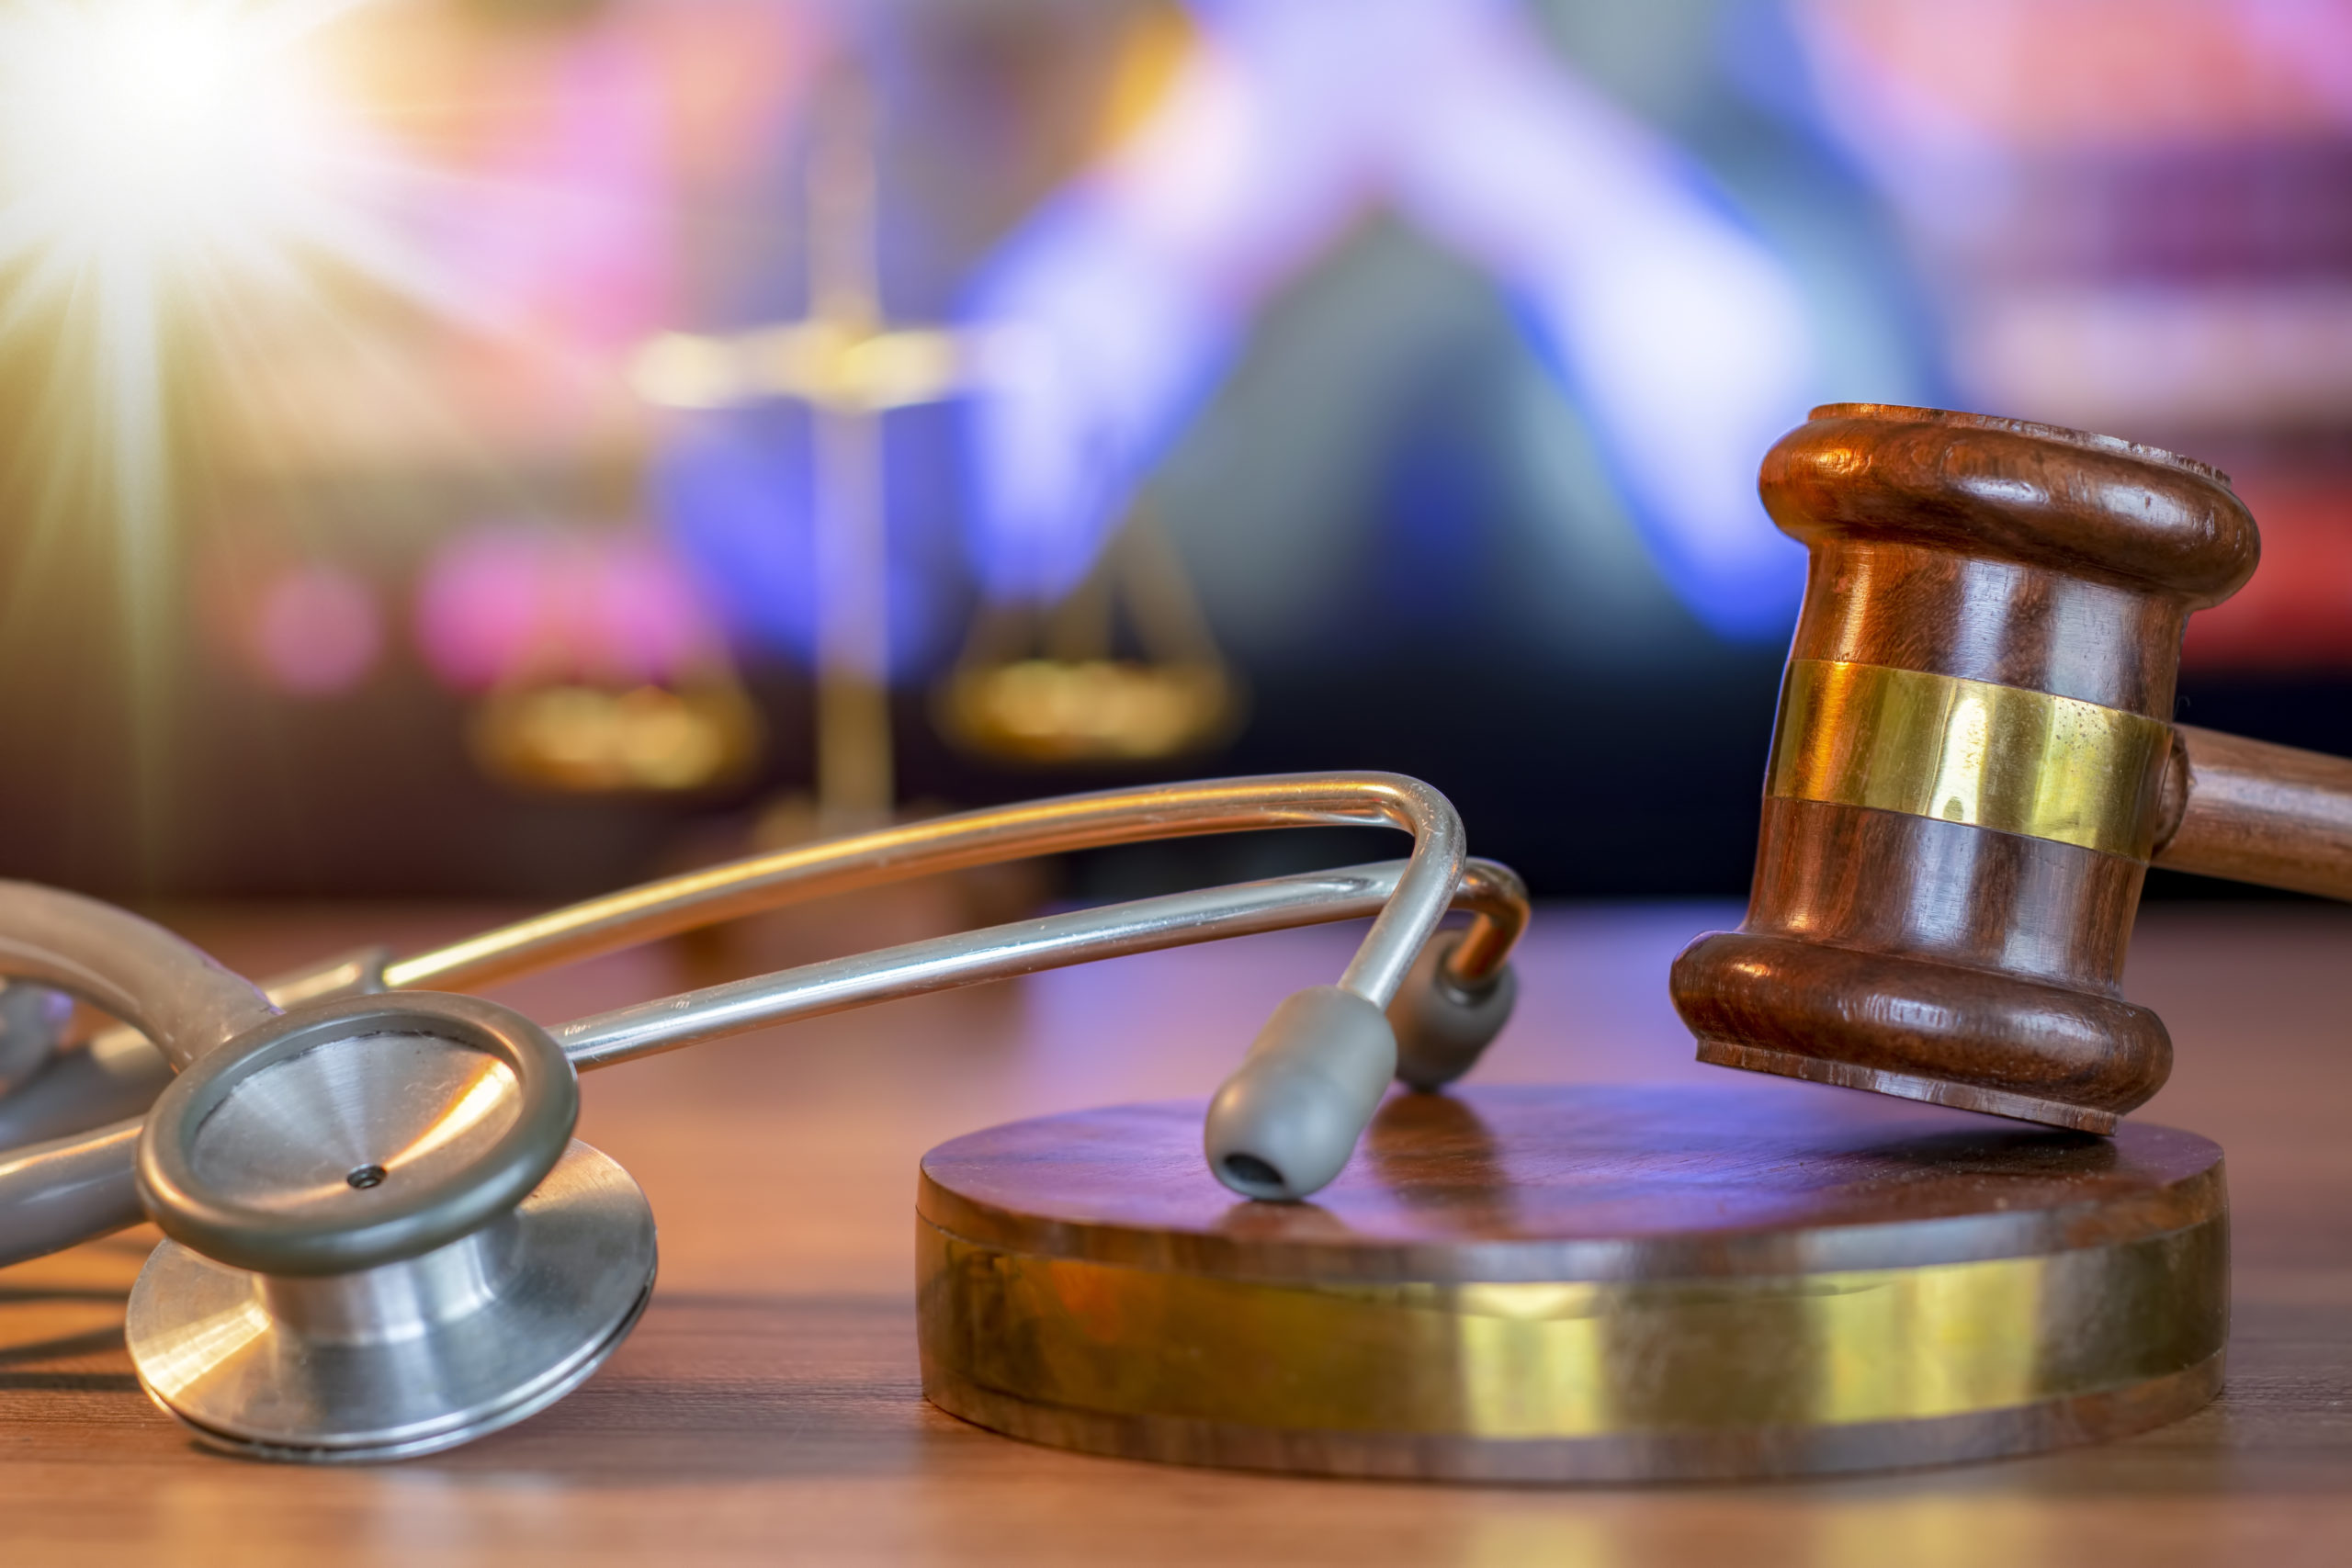 Justice Gavel and stethoscope with red heart on background.law concept Judge law medical Pharmacy compliance Health care business rules.